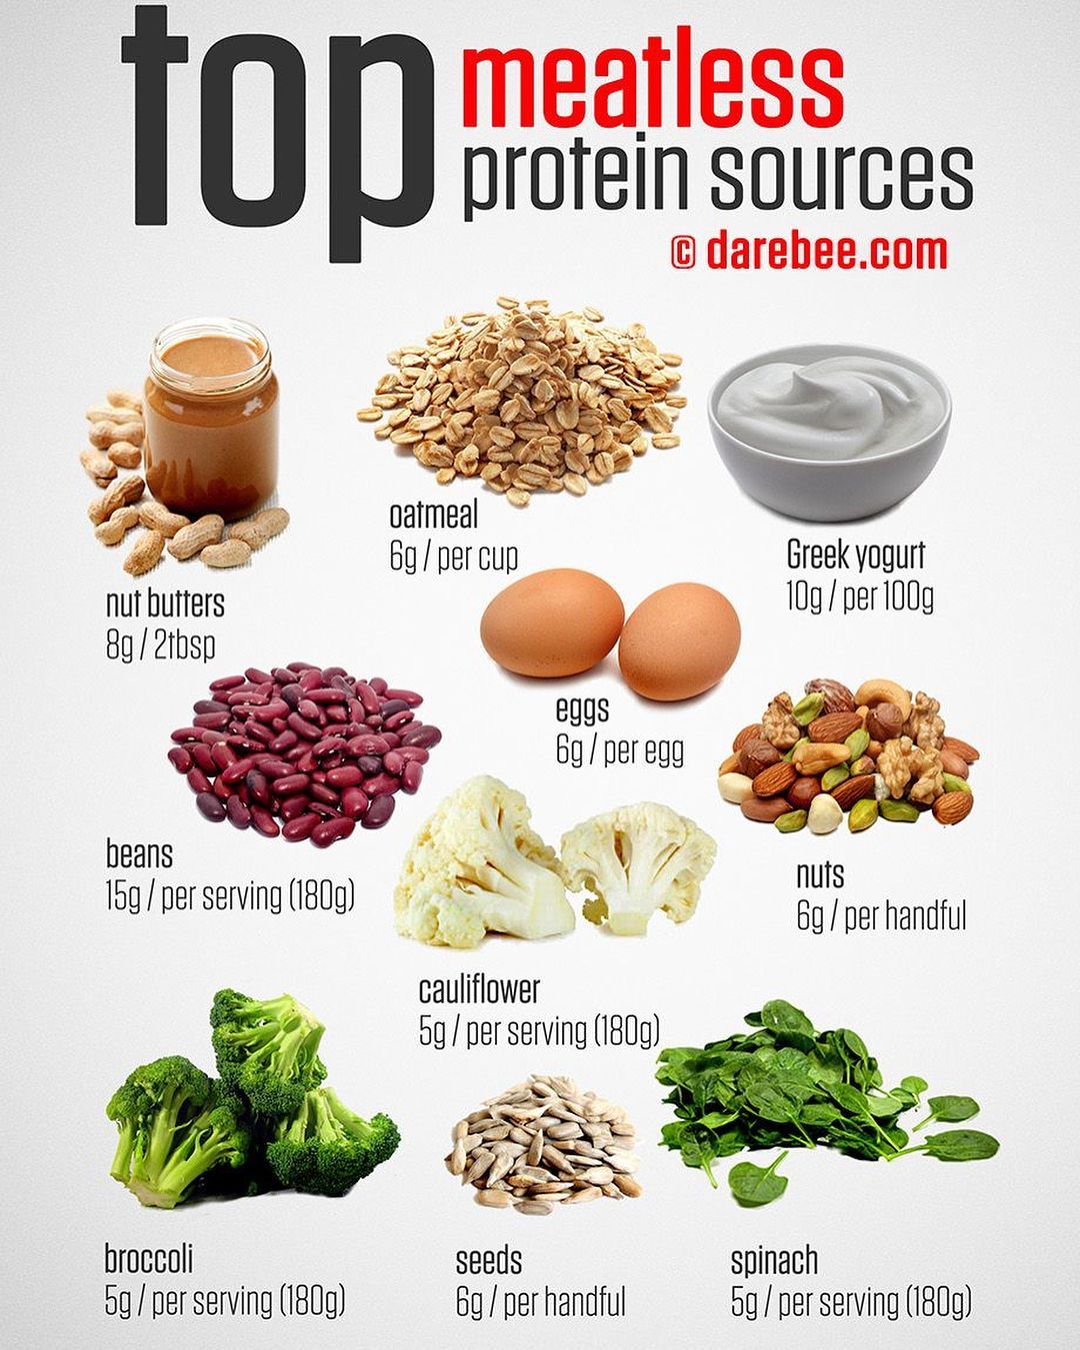 Protein on Keto. Protein is very important. Without